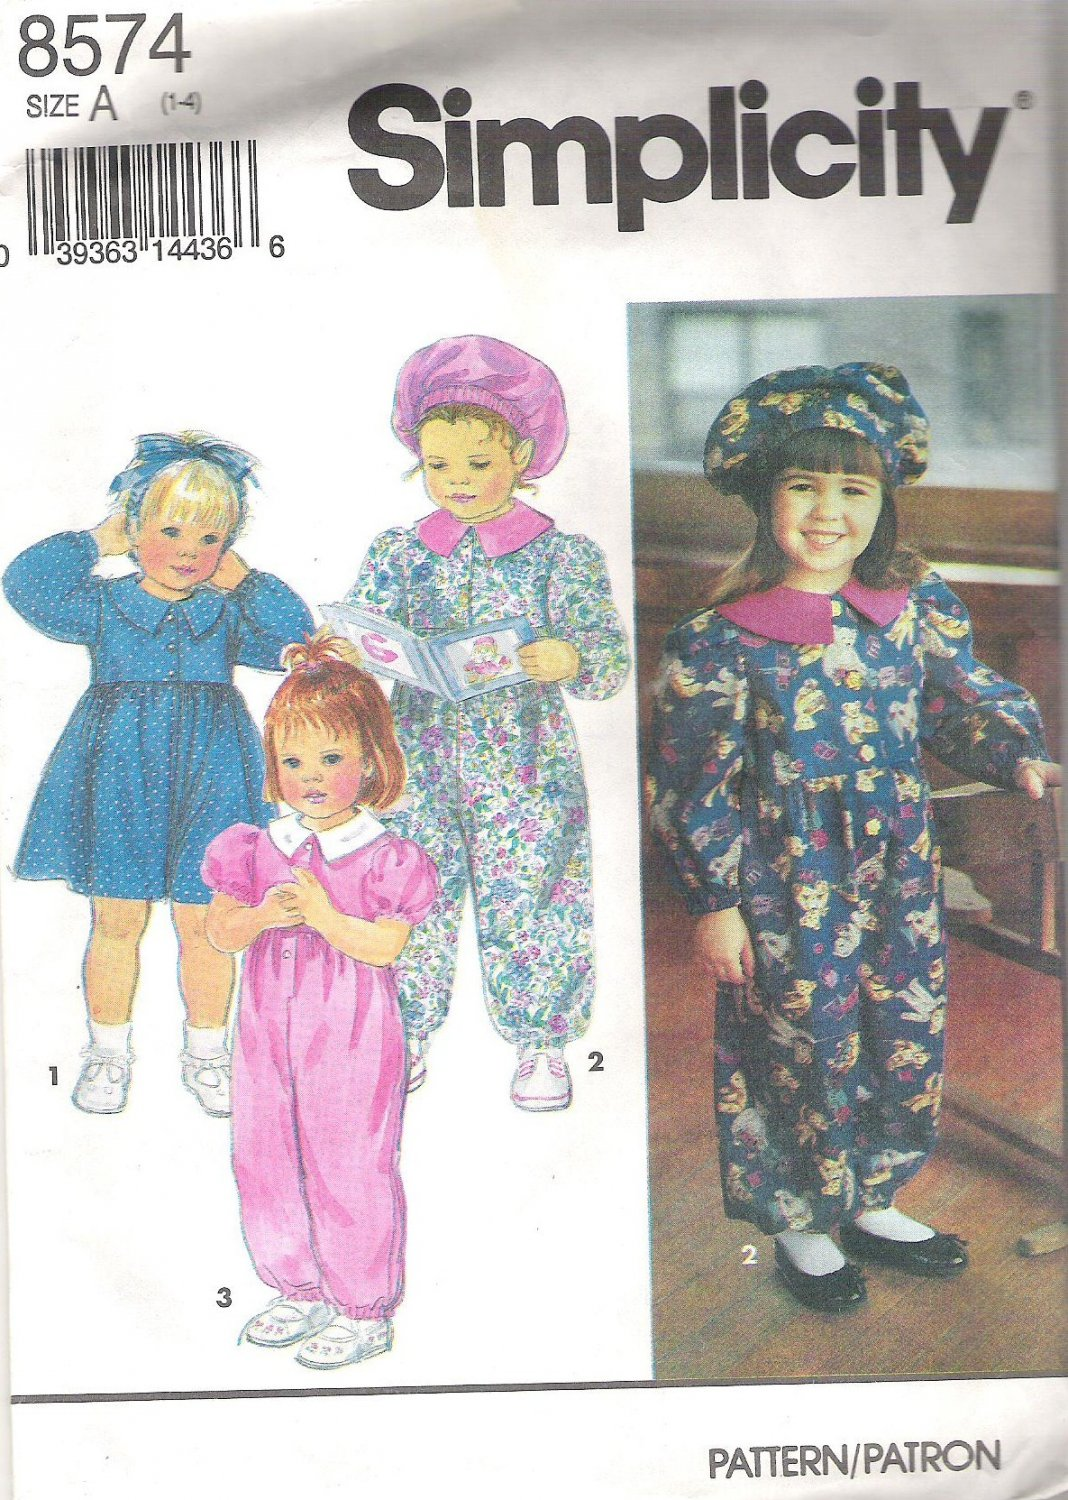 1993 Simplicity 8574 Pattern Toddler's Dress, Jumpsuit  Hat  Size 1-4   Cut to 4